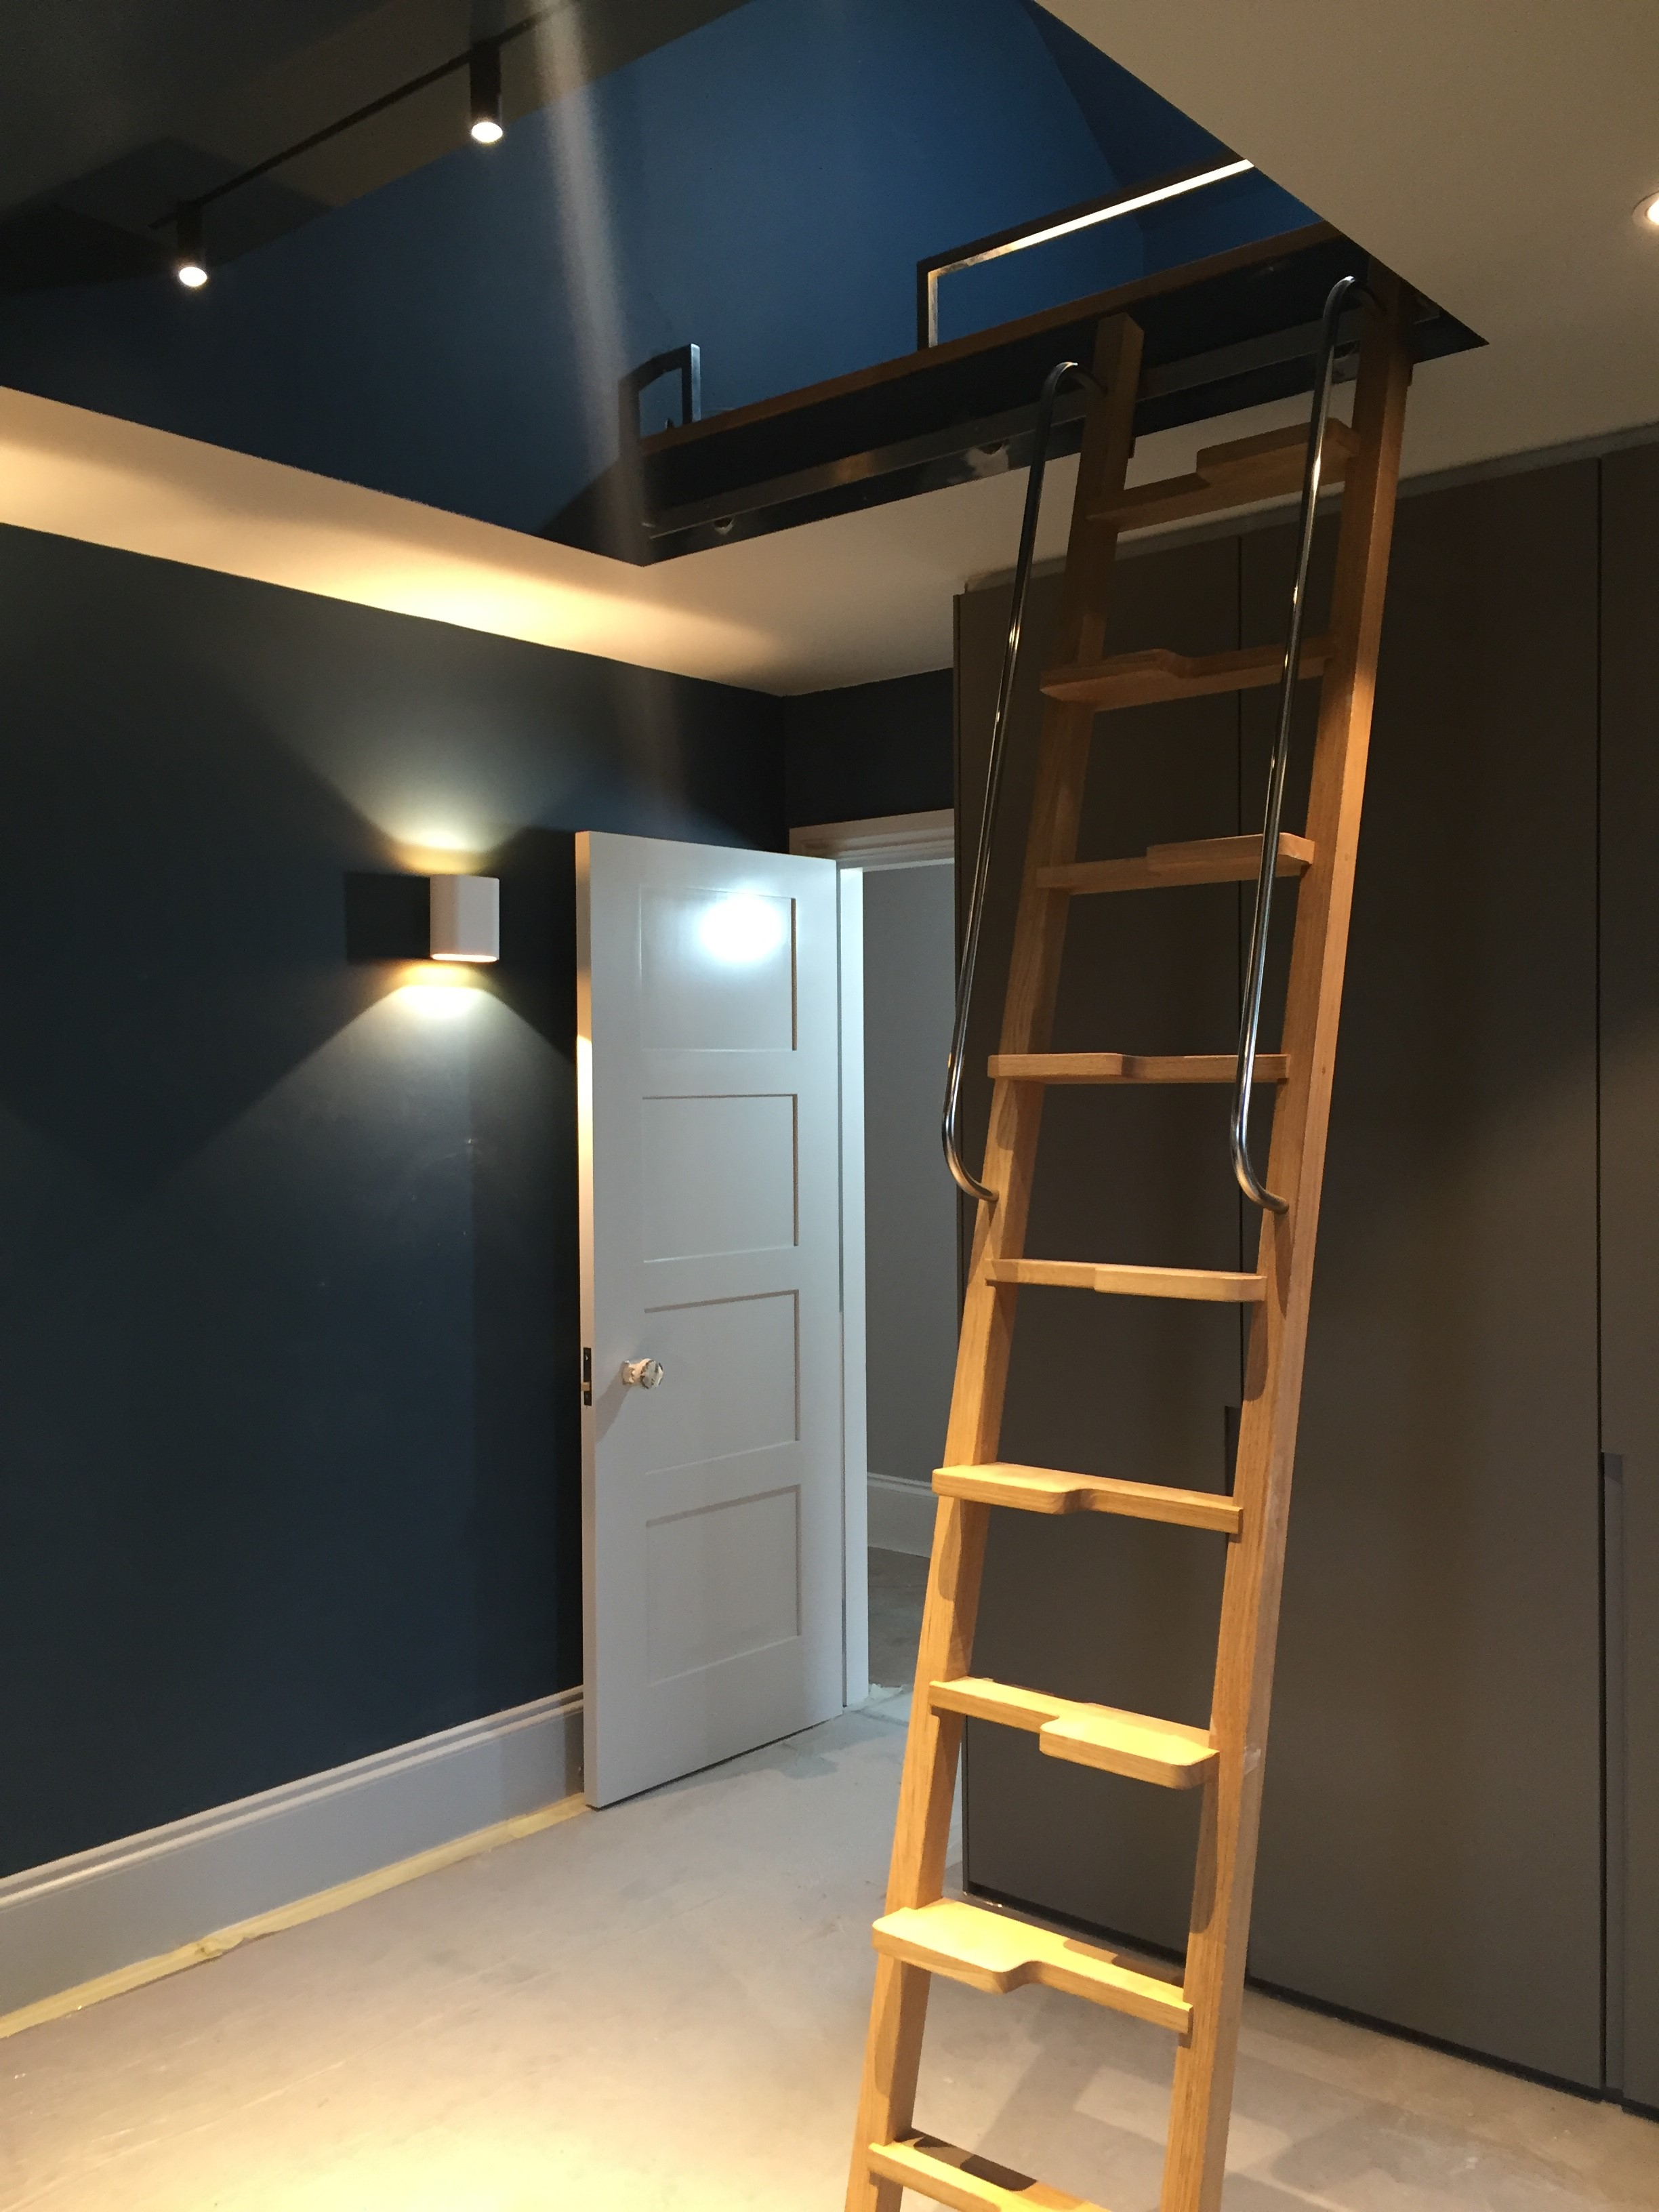 creativemass - bed deck, ladder, oak, attic space, London